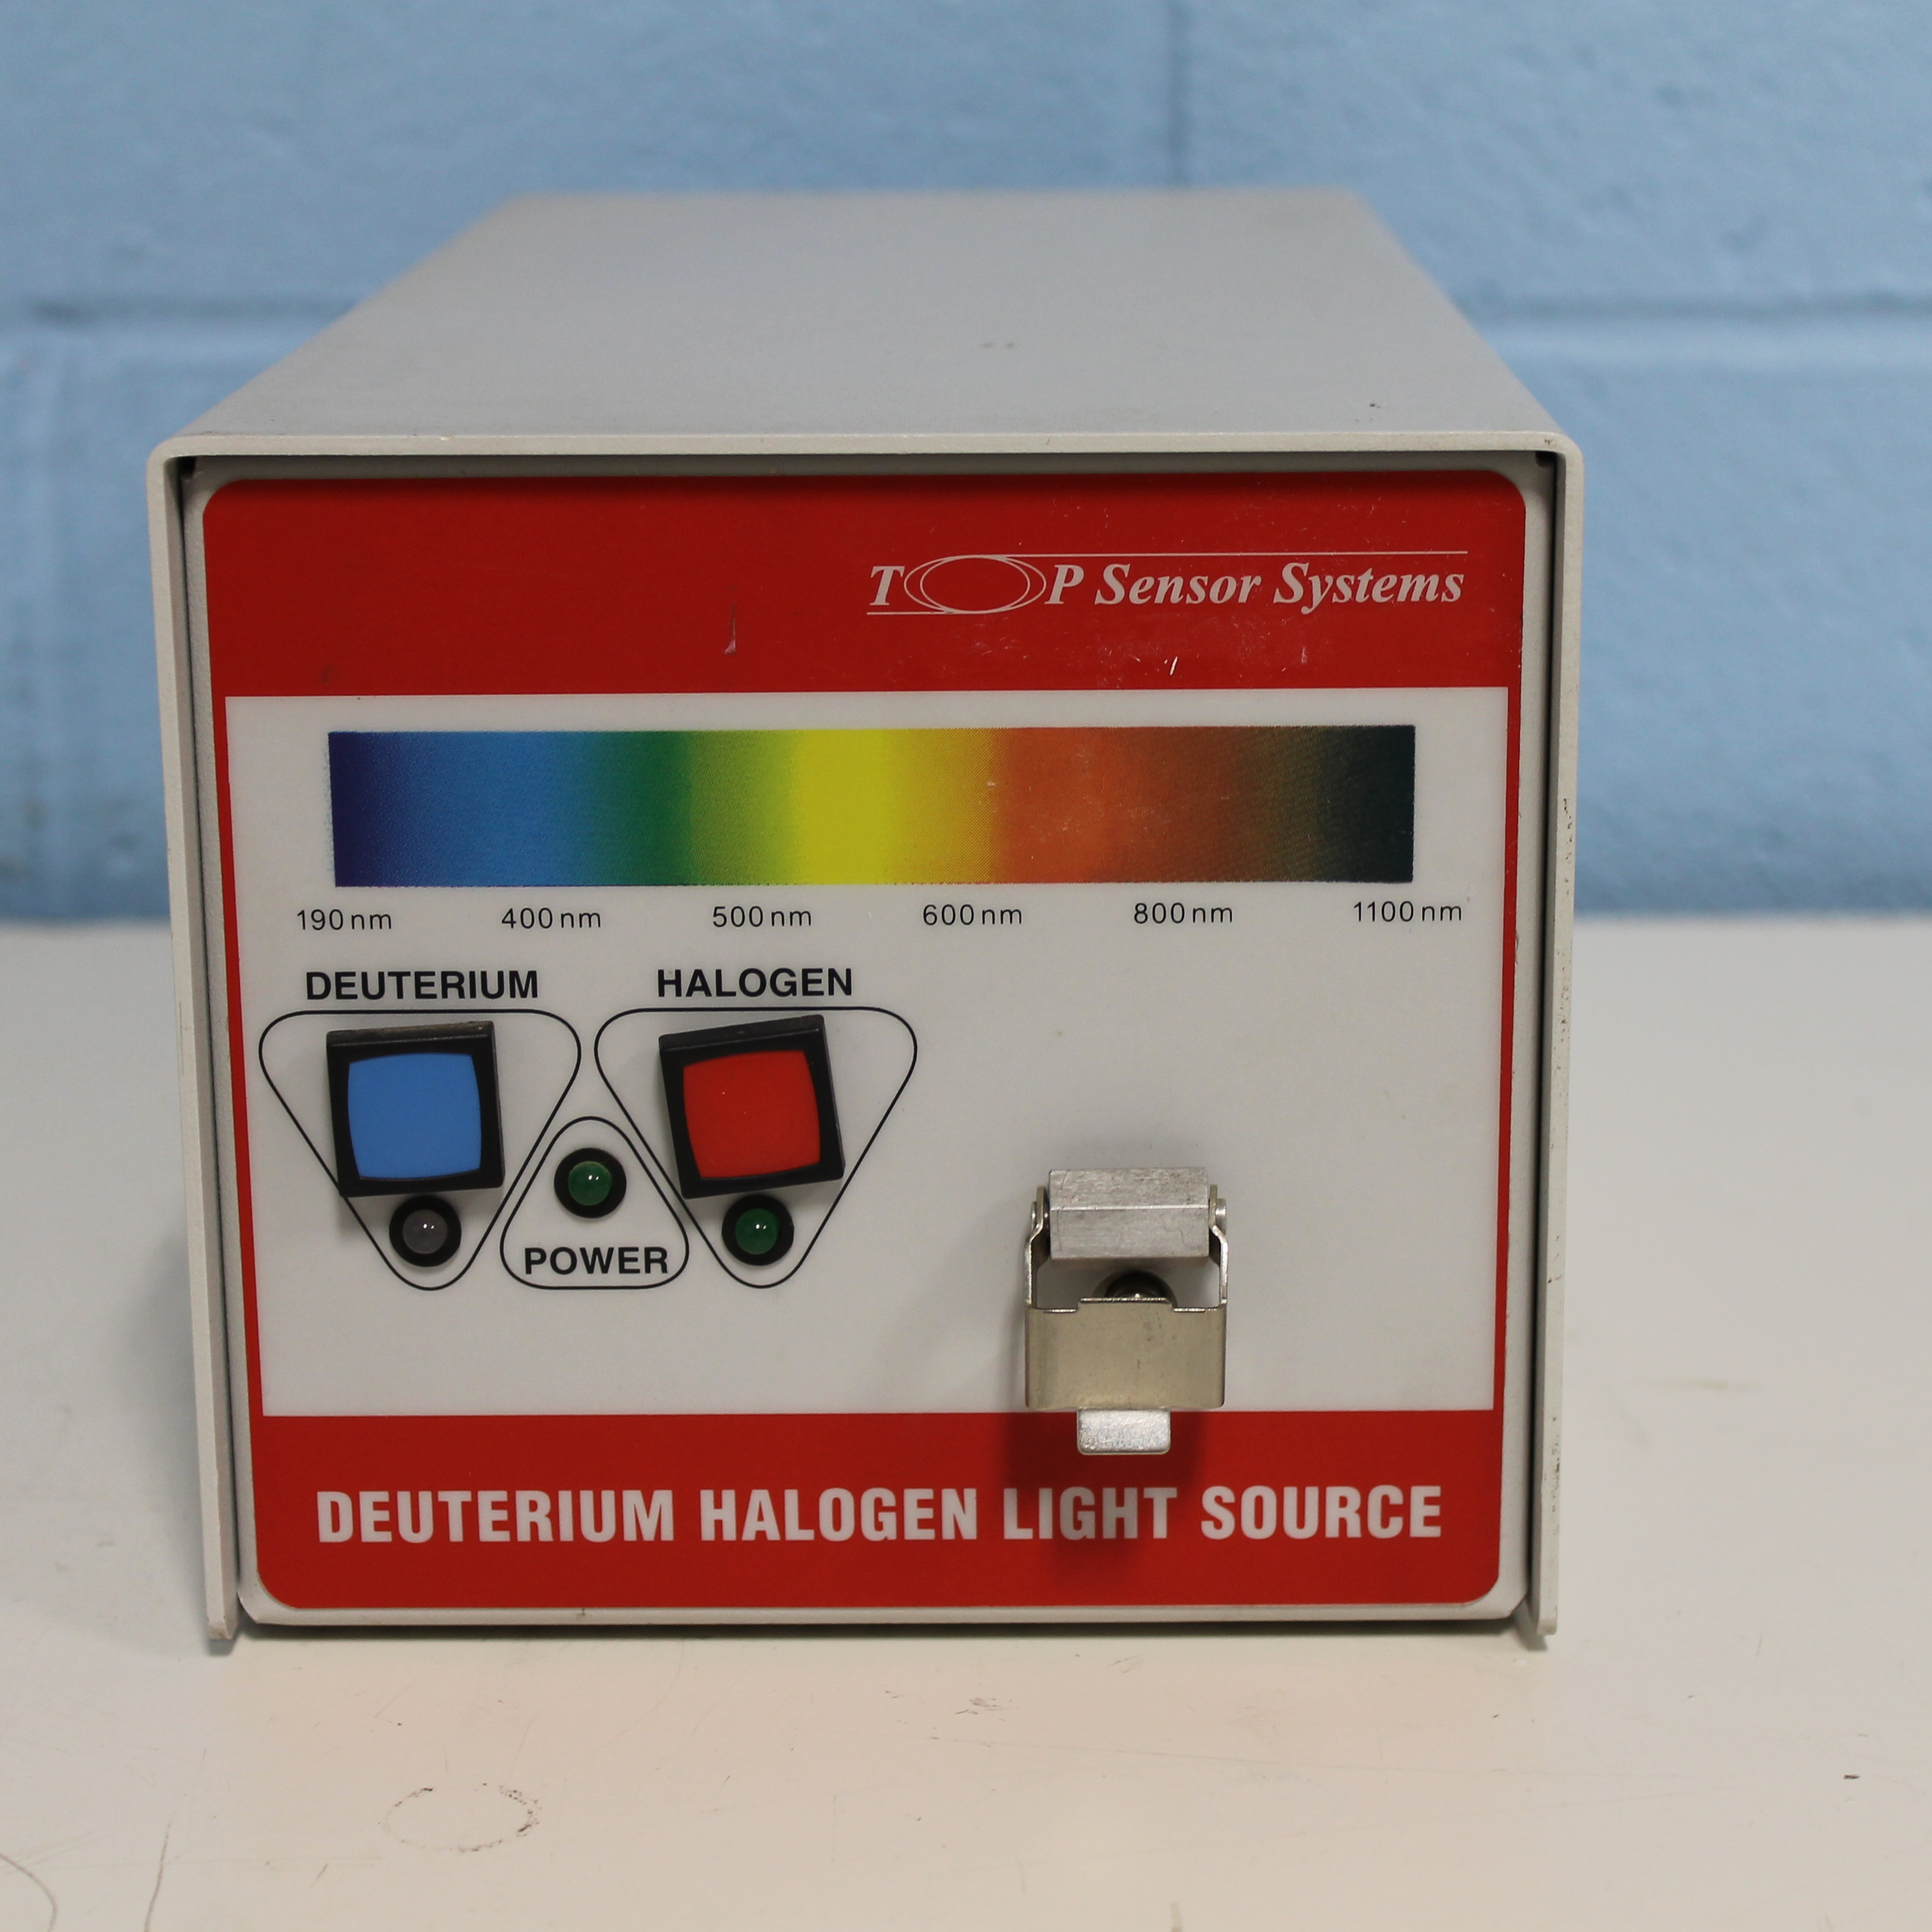 Top Sensor Systems Deuterium Tungsten Halogen Light Source Image